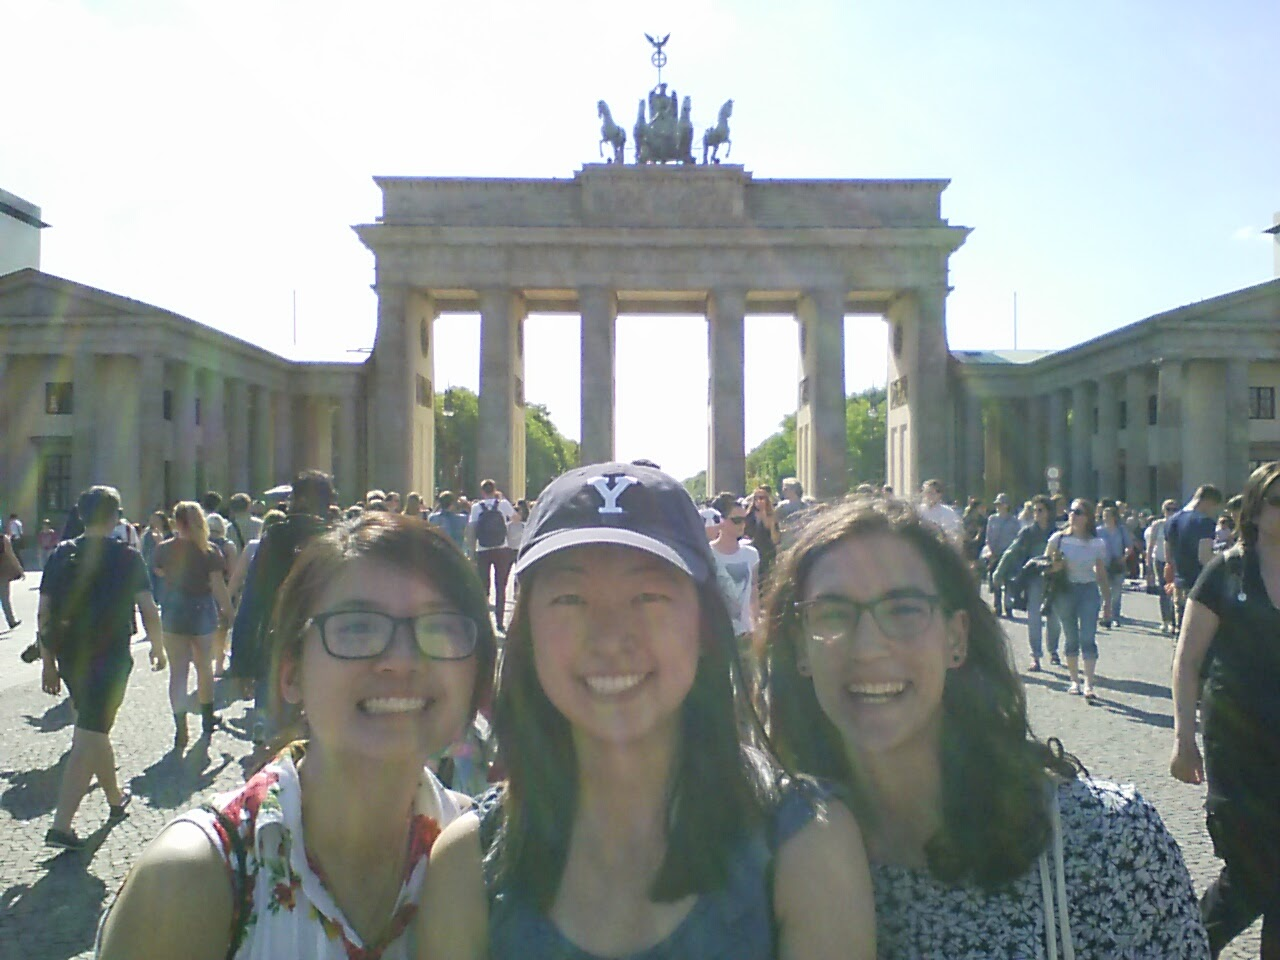 In front of the Brandenburg Gate